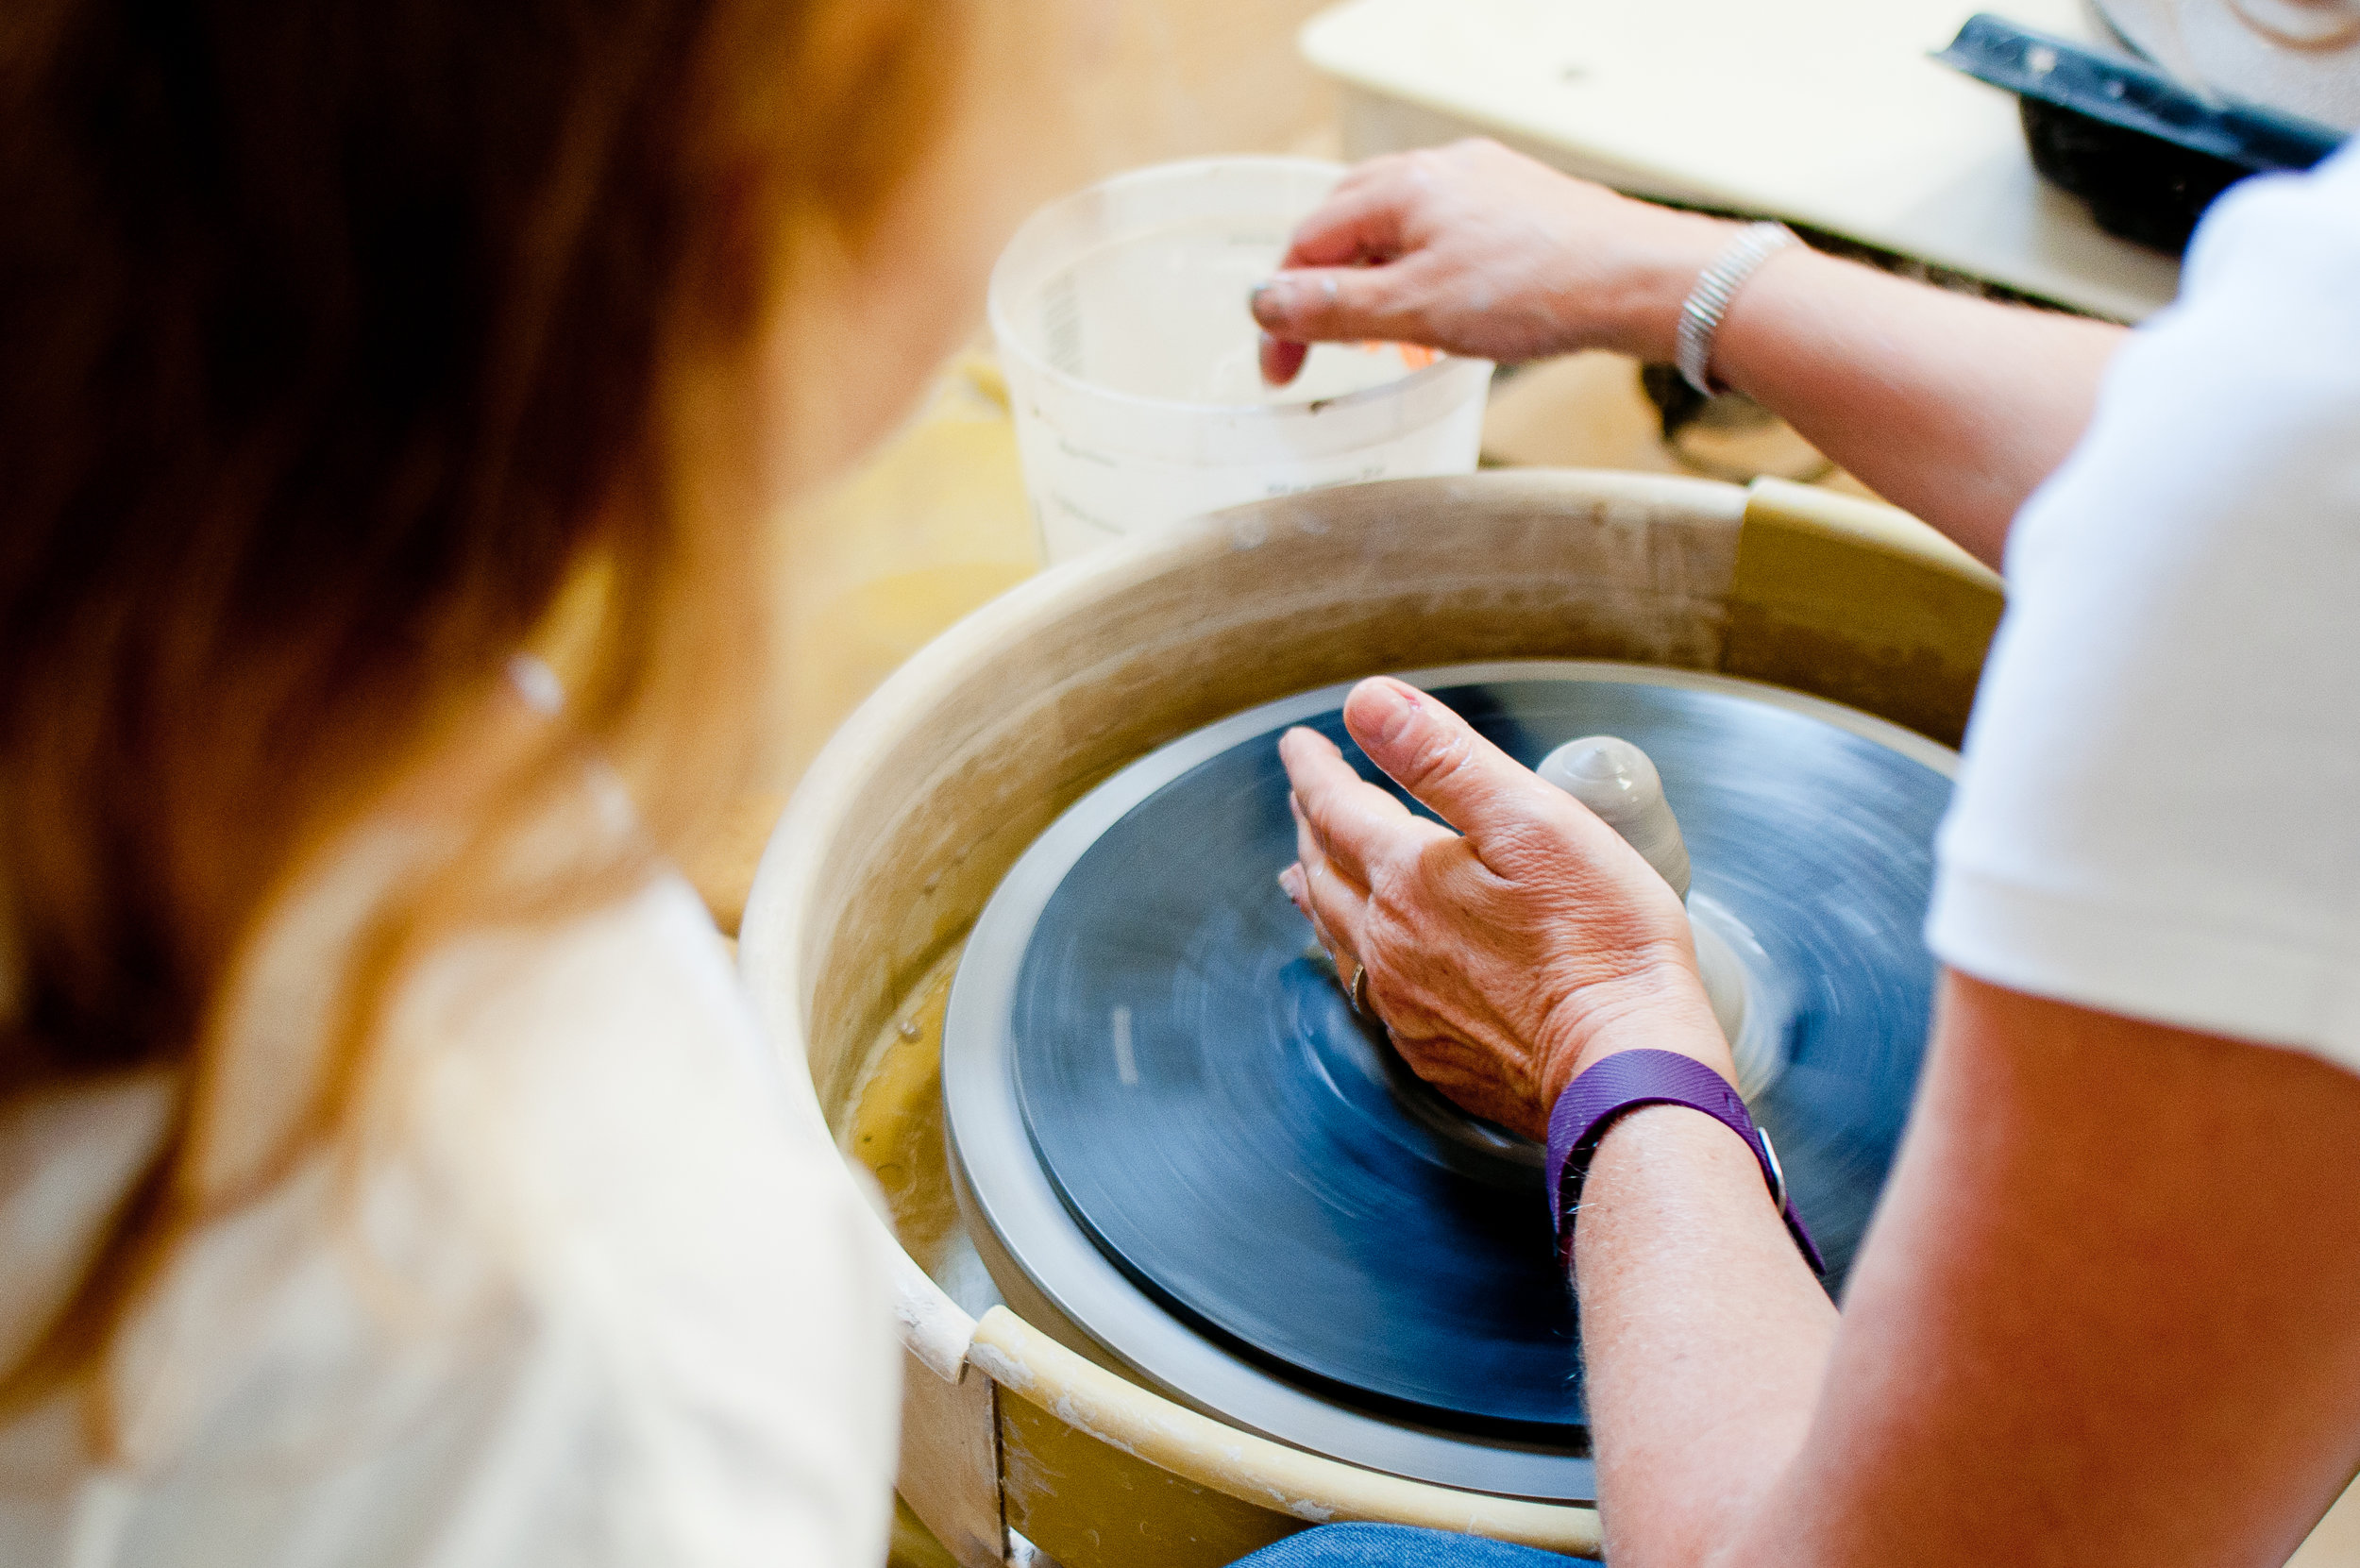 Wheel Throwing 2 & Beyond - Tuesday, 1 - 4 pm or 7- 10pm4 ClassesInstructor: David MoynihanLevel: some clay experience requiredAge: AdultBe guided through developing your personal approach to centering, opening, widening, stretching and shaping clay on the potters wheel to form a variety of larger and more complex vessels.